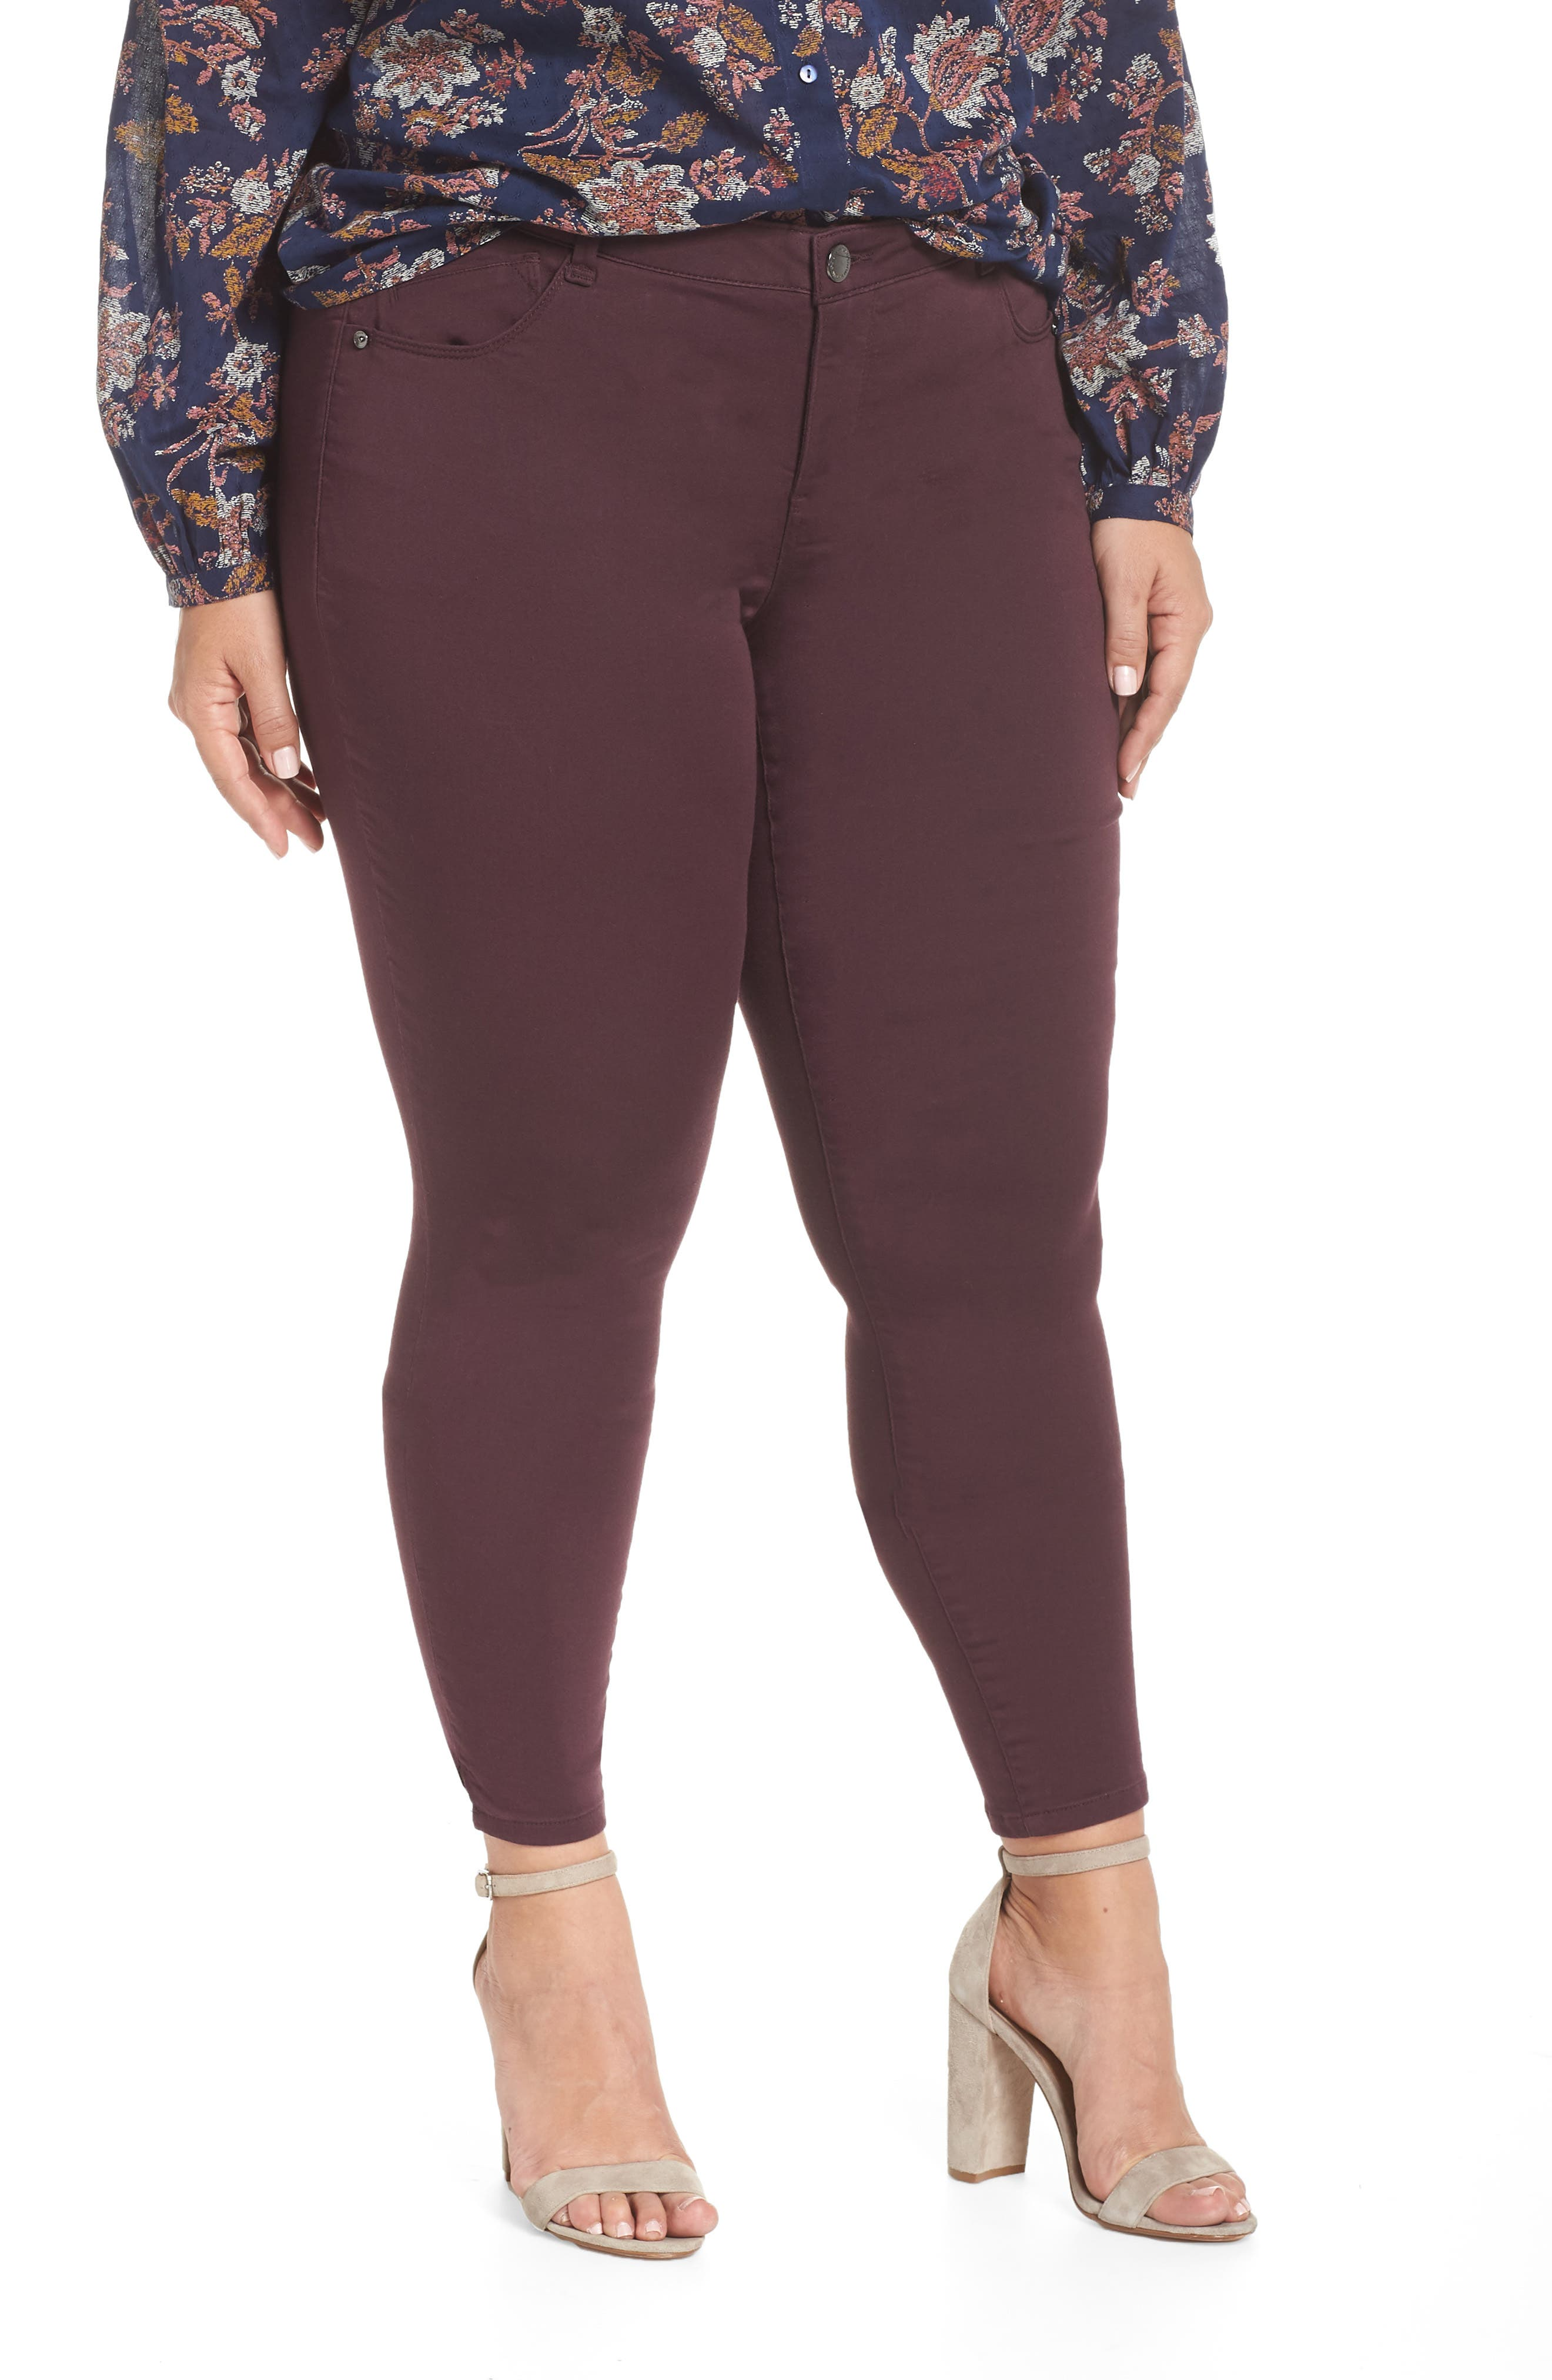 WIT & WISDOM, Ab-Solution Ankle Skimmer Jeans, Main thumbnail 1, color, DARK BYZANTIUM